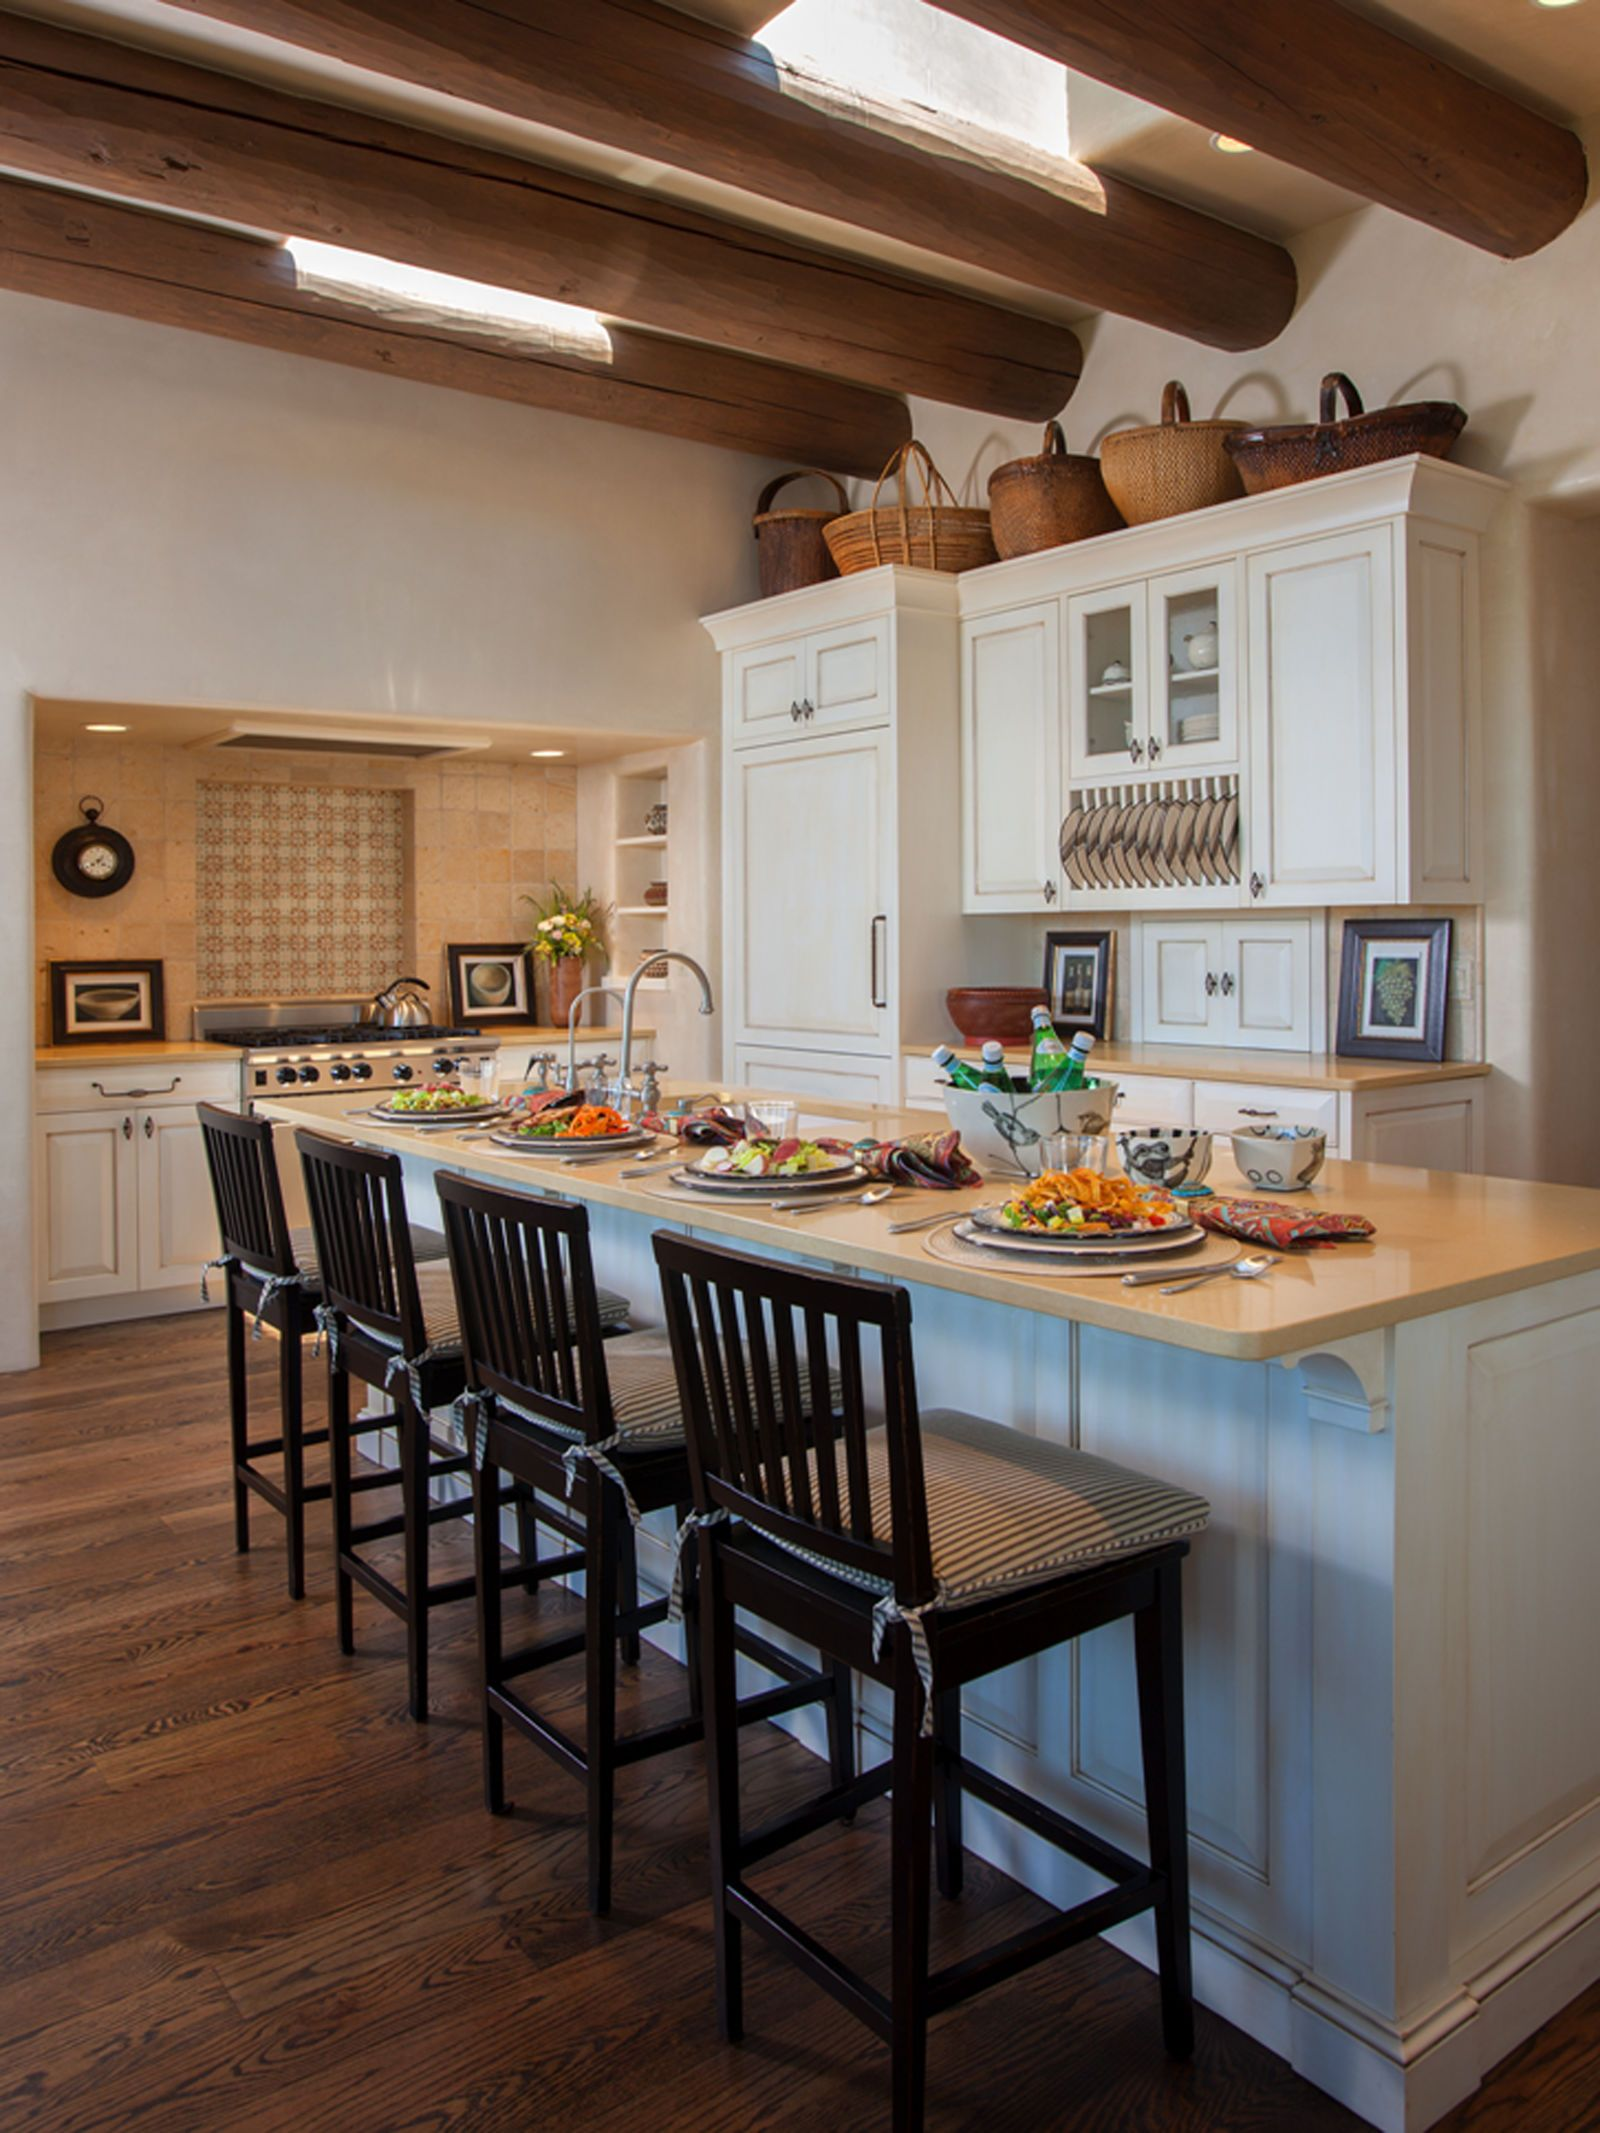 Step Inside a Stunning Adobe Home in Santa Fe | Home remodel ... on